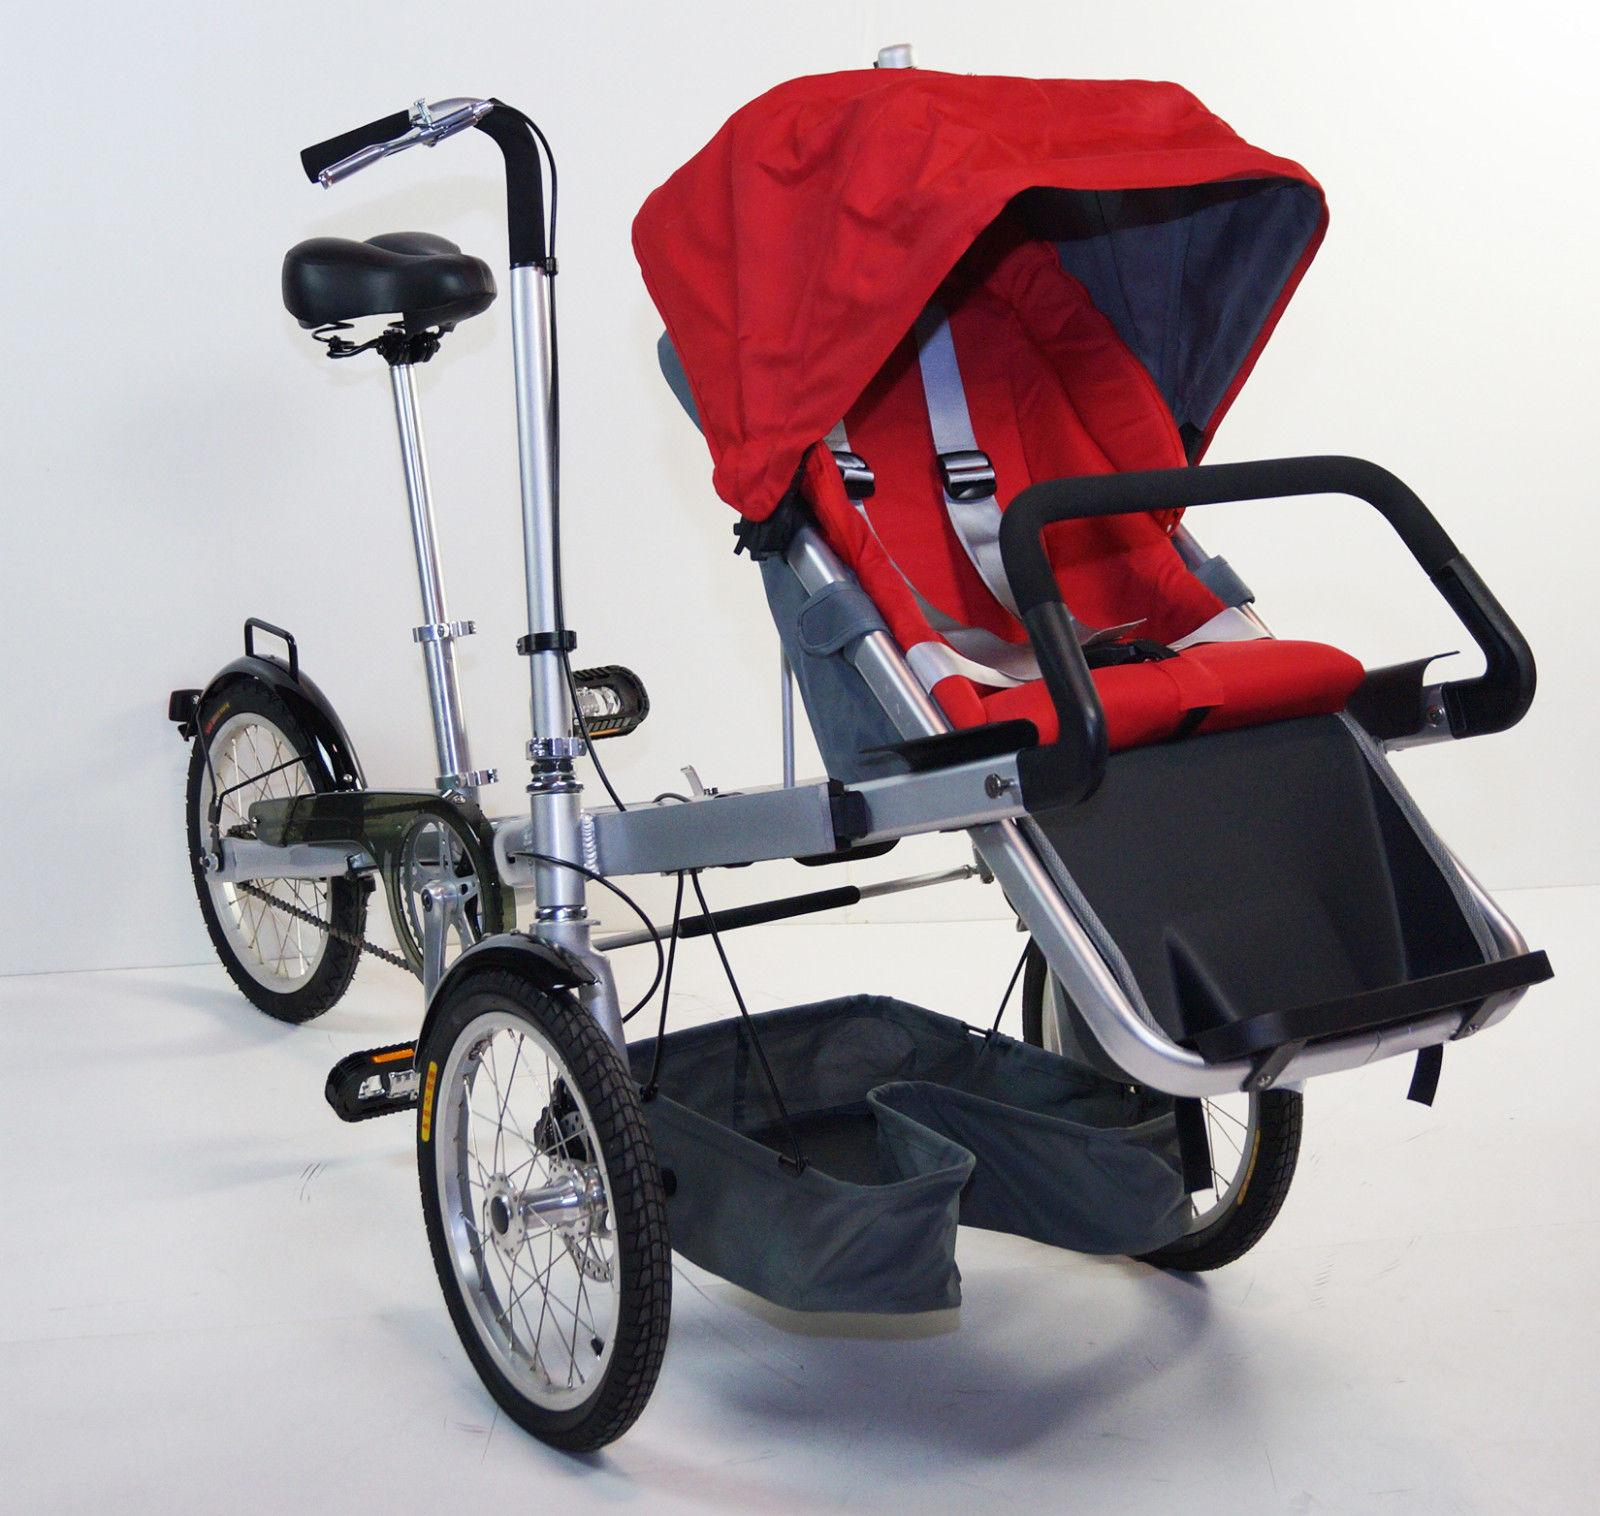 3 Wheels Folding Bicycle Pushchair Mother Baby Stroller Bike Carrier Rideonecar